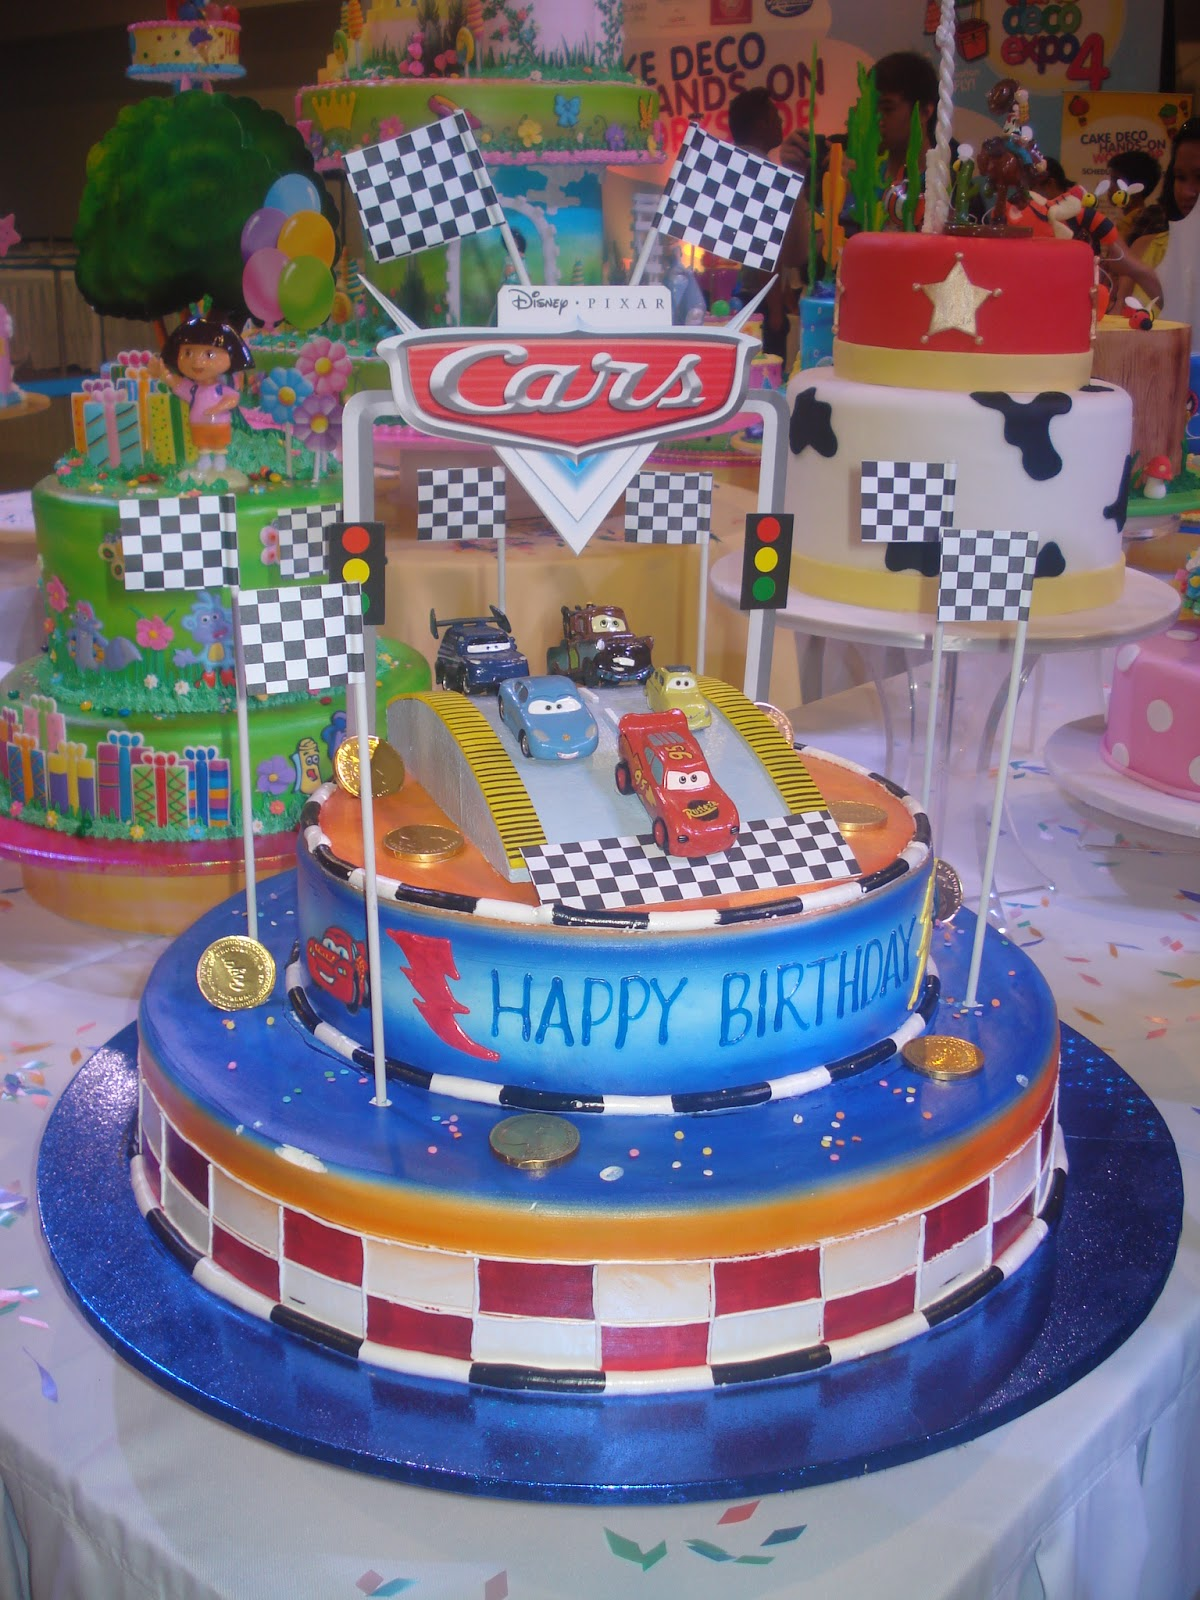 Goldilocks Cars Cake Price www.pixshark.com - Images ...